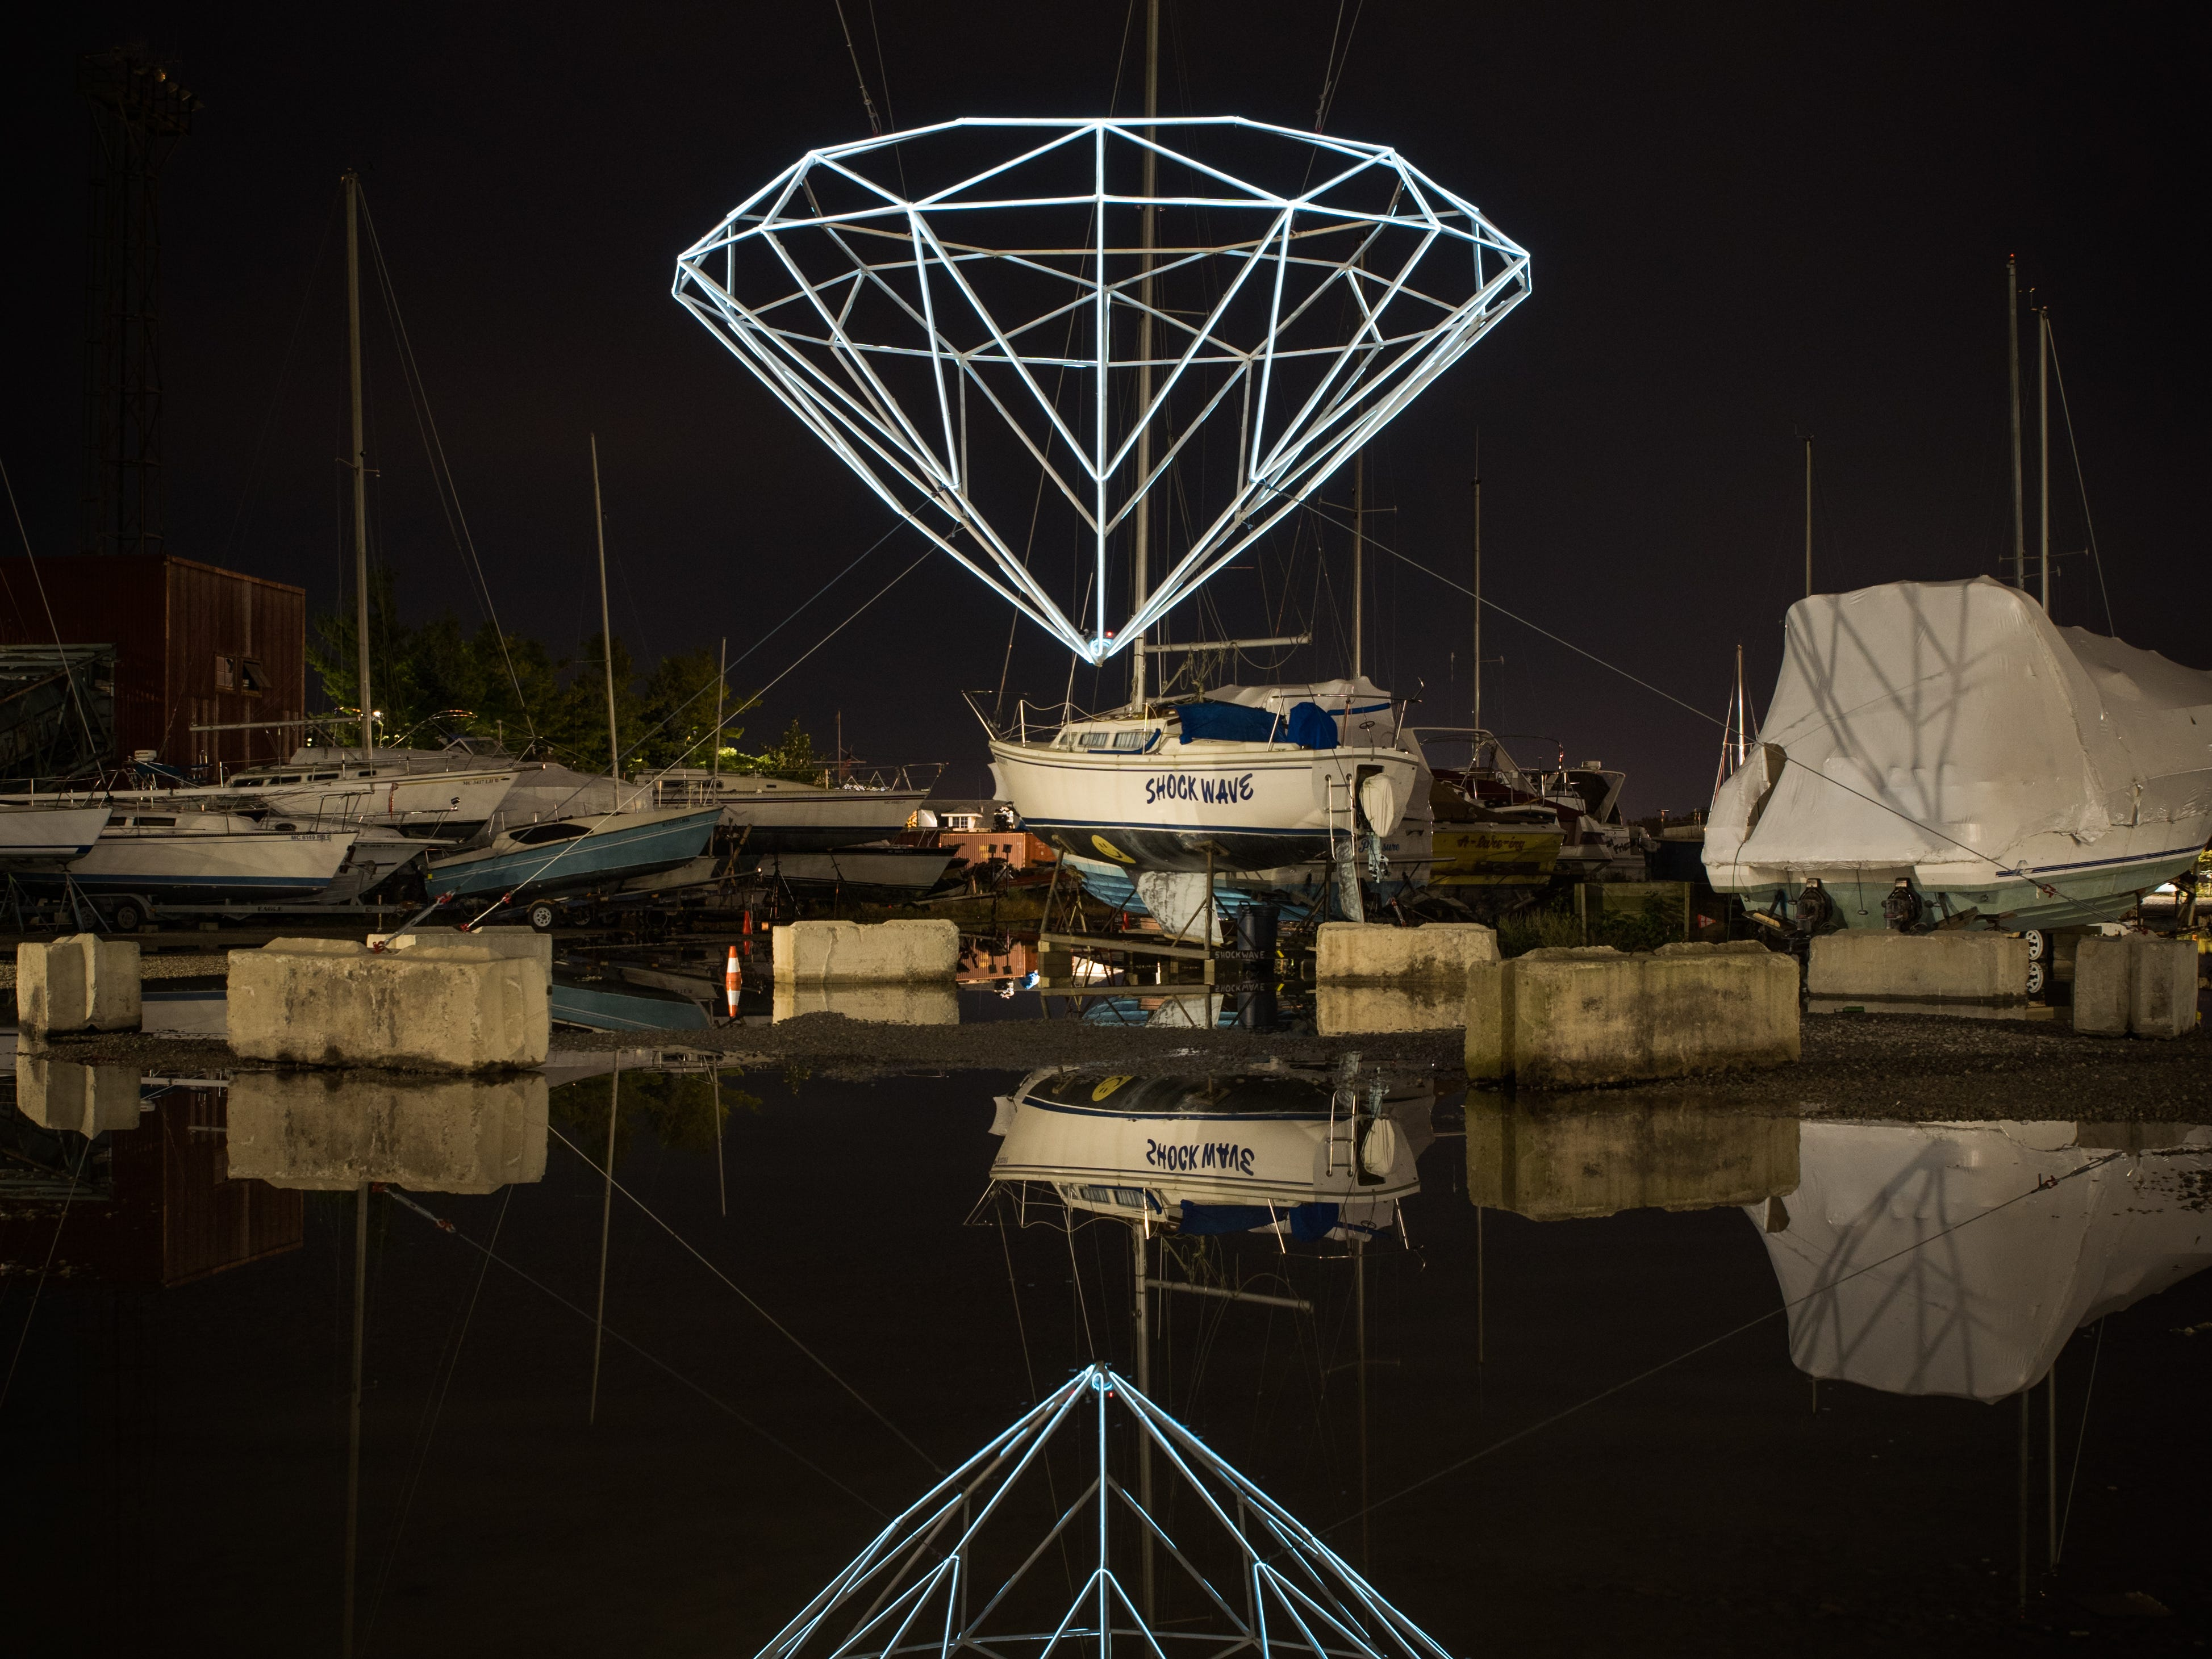 """The diamond-shaped light installation reflects into the waterfront site. """"It's about questions of value,"""" says artist Steve Coy.  """"We're negotiating with the idea of superficial value, real value, what does it mean to be human and why are we attracted to the things we are."""""""